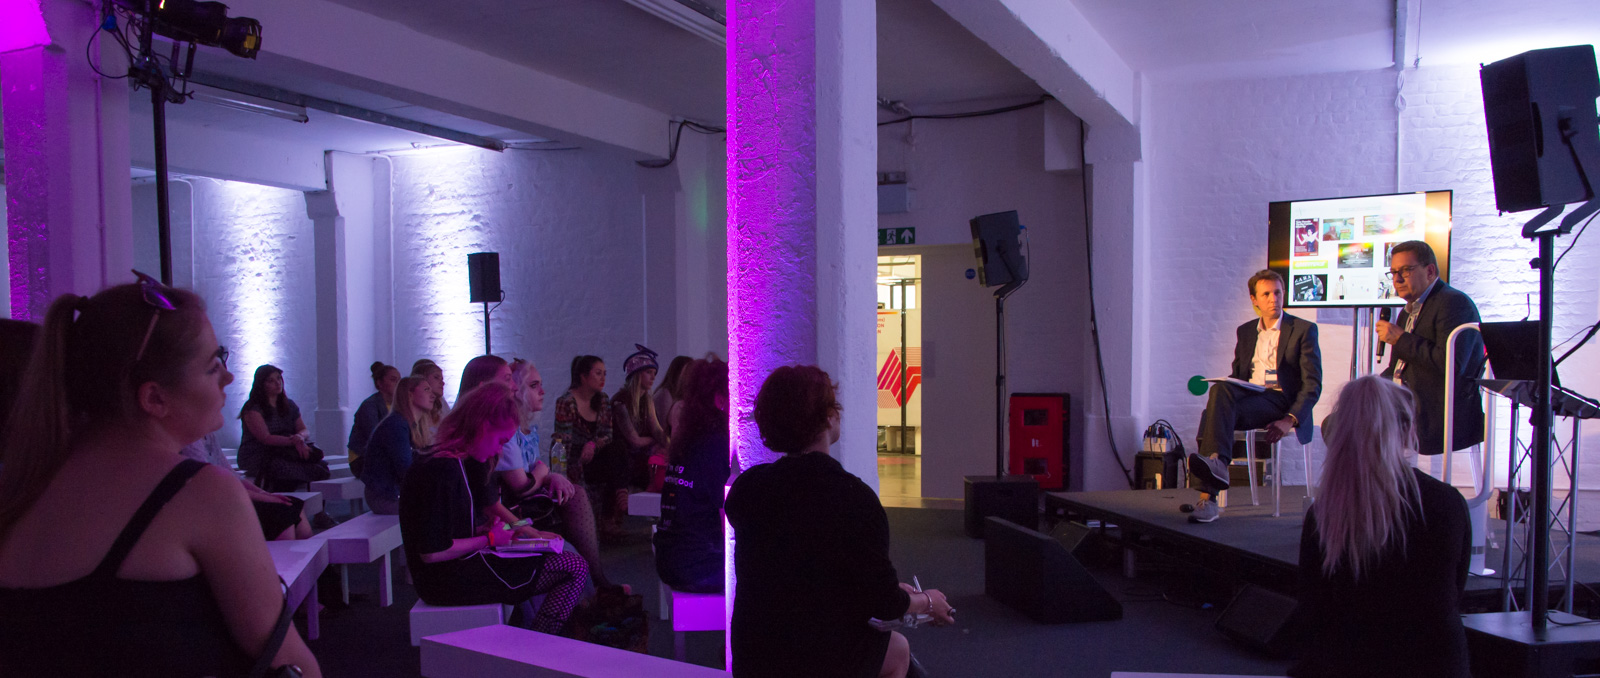 gfw live talk m&s sustainable fashion 070617 image by tina mayr-19.jpg